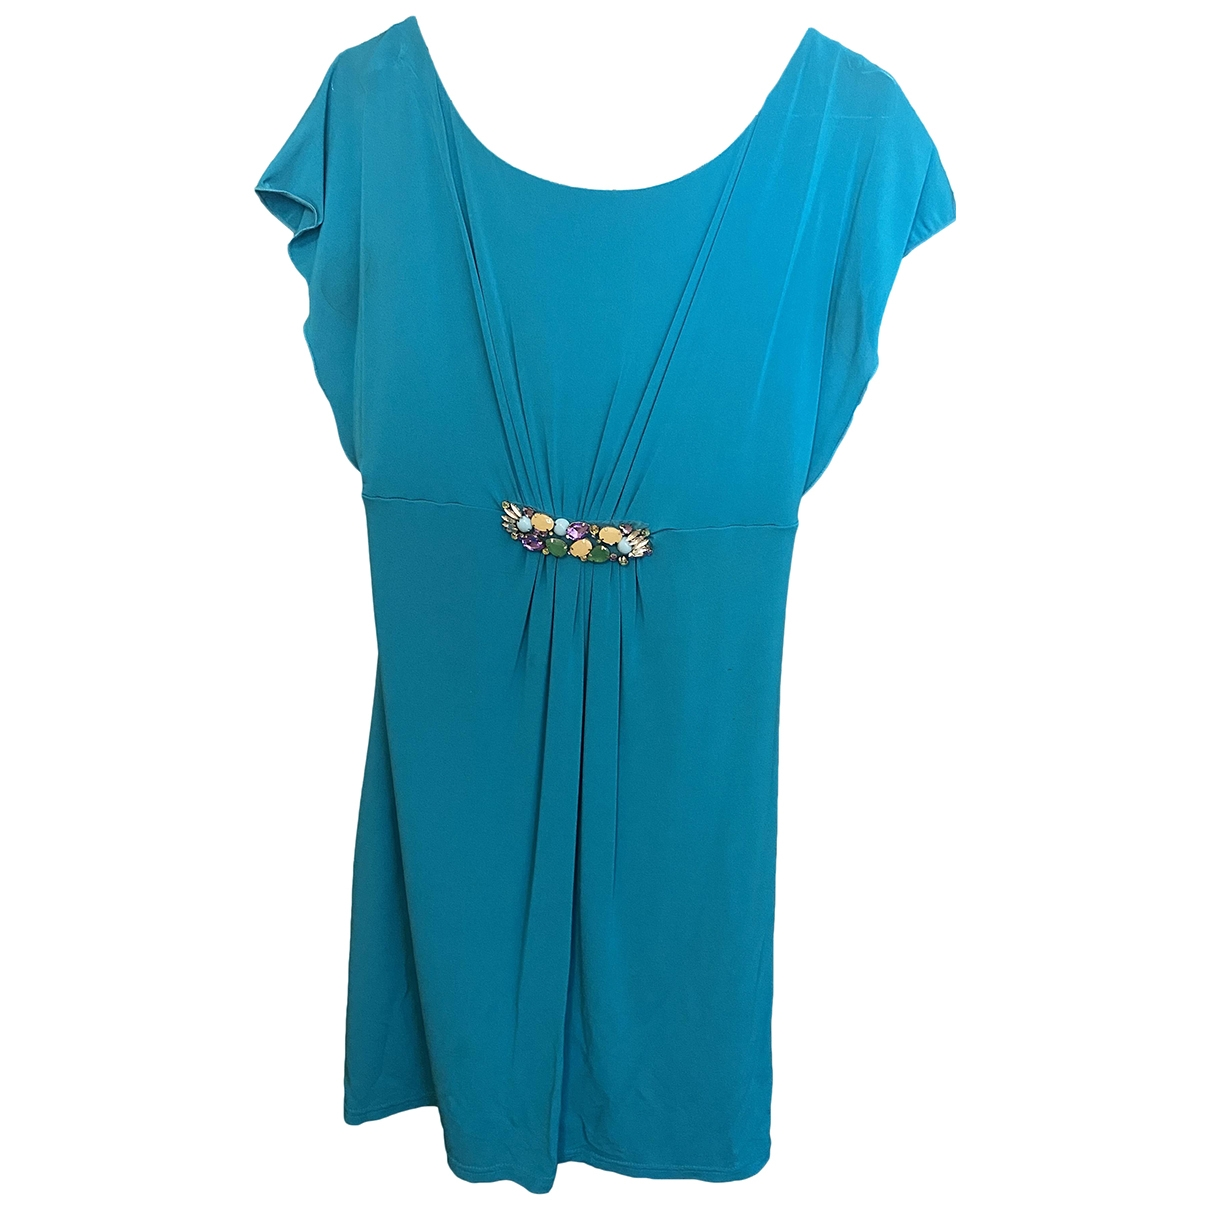 Marella \N Turquoise dress for Women 42 IT